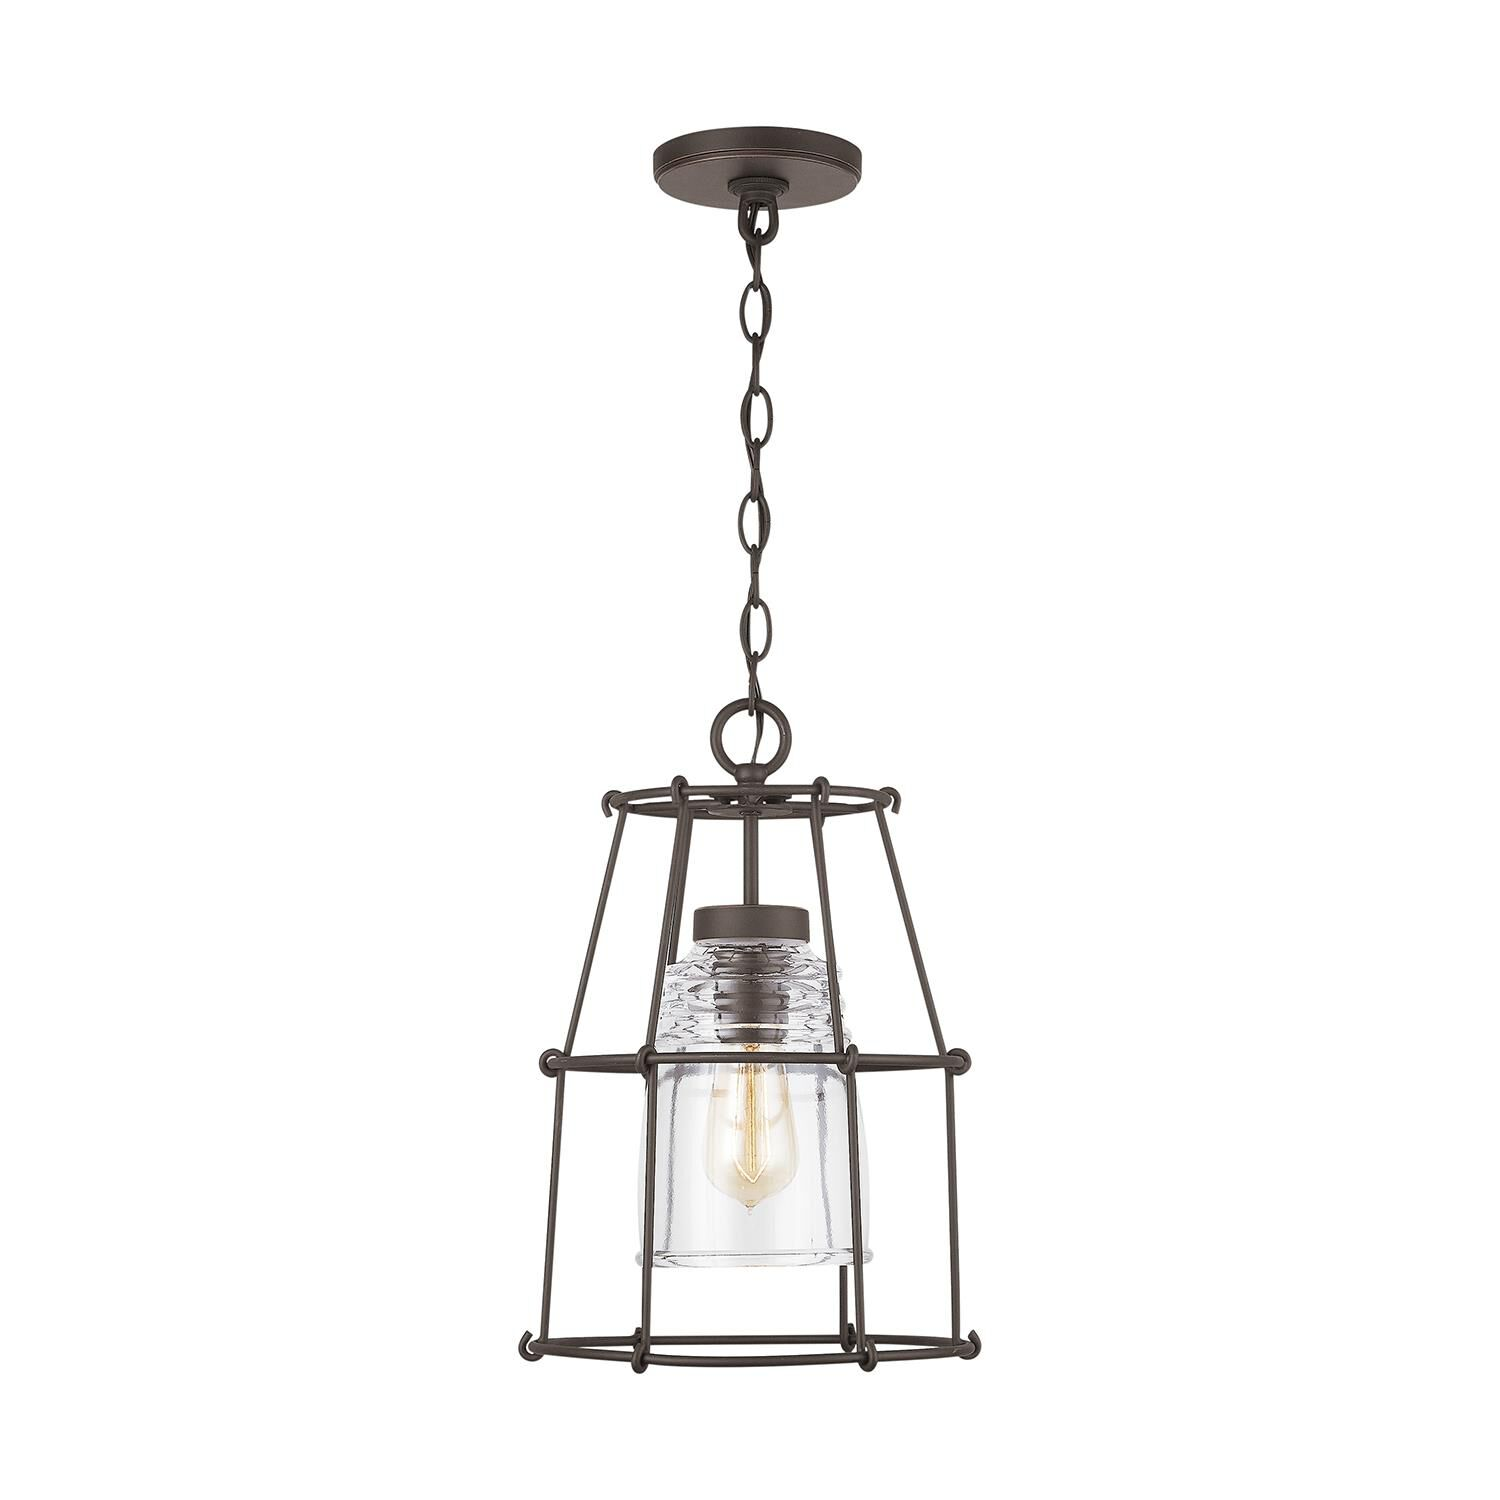 Capital Lighting Fixture Company 16 Inch Tall 1 Light Outdoor Hanging Lantern - 929711oz-462 - Rustic